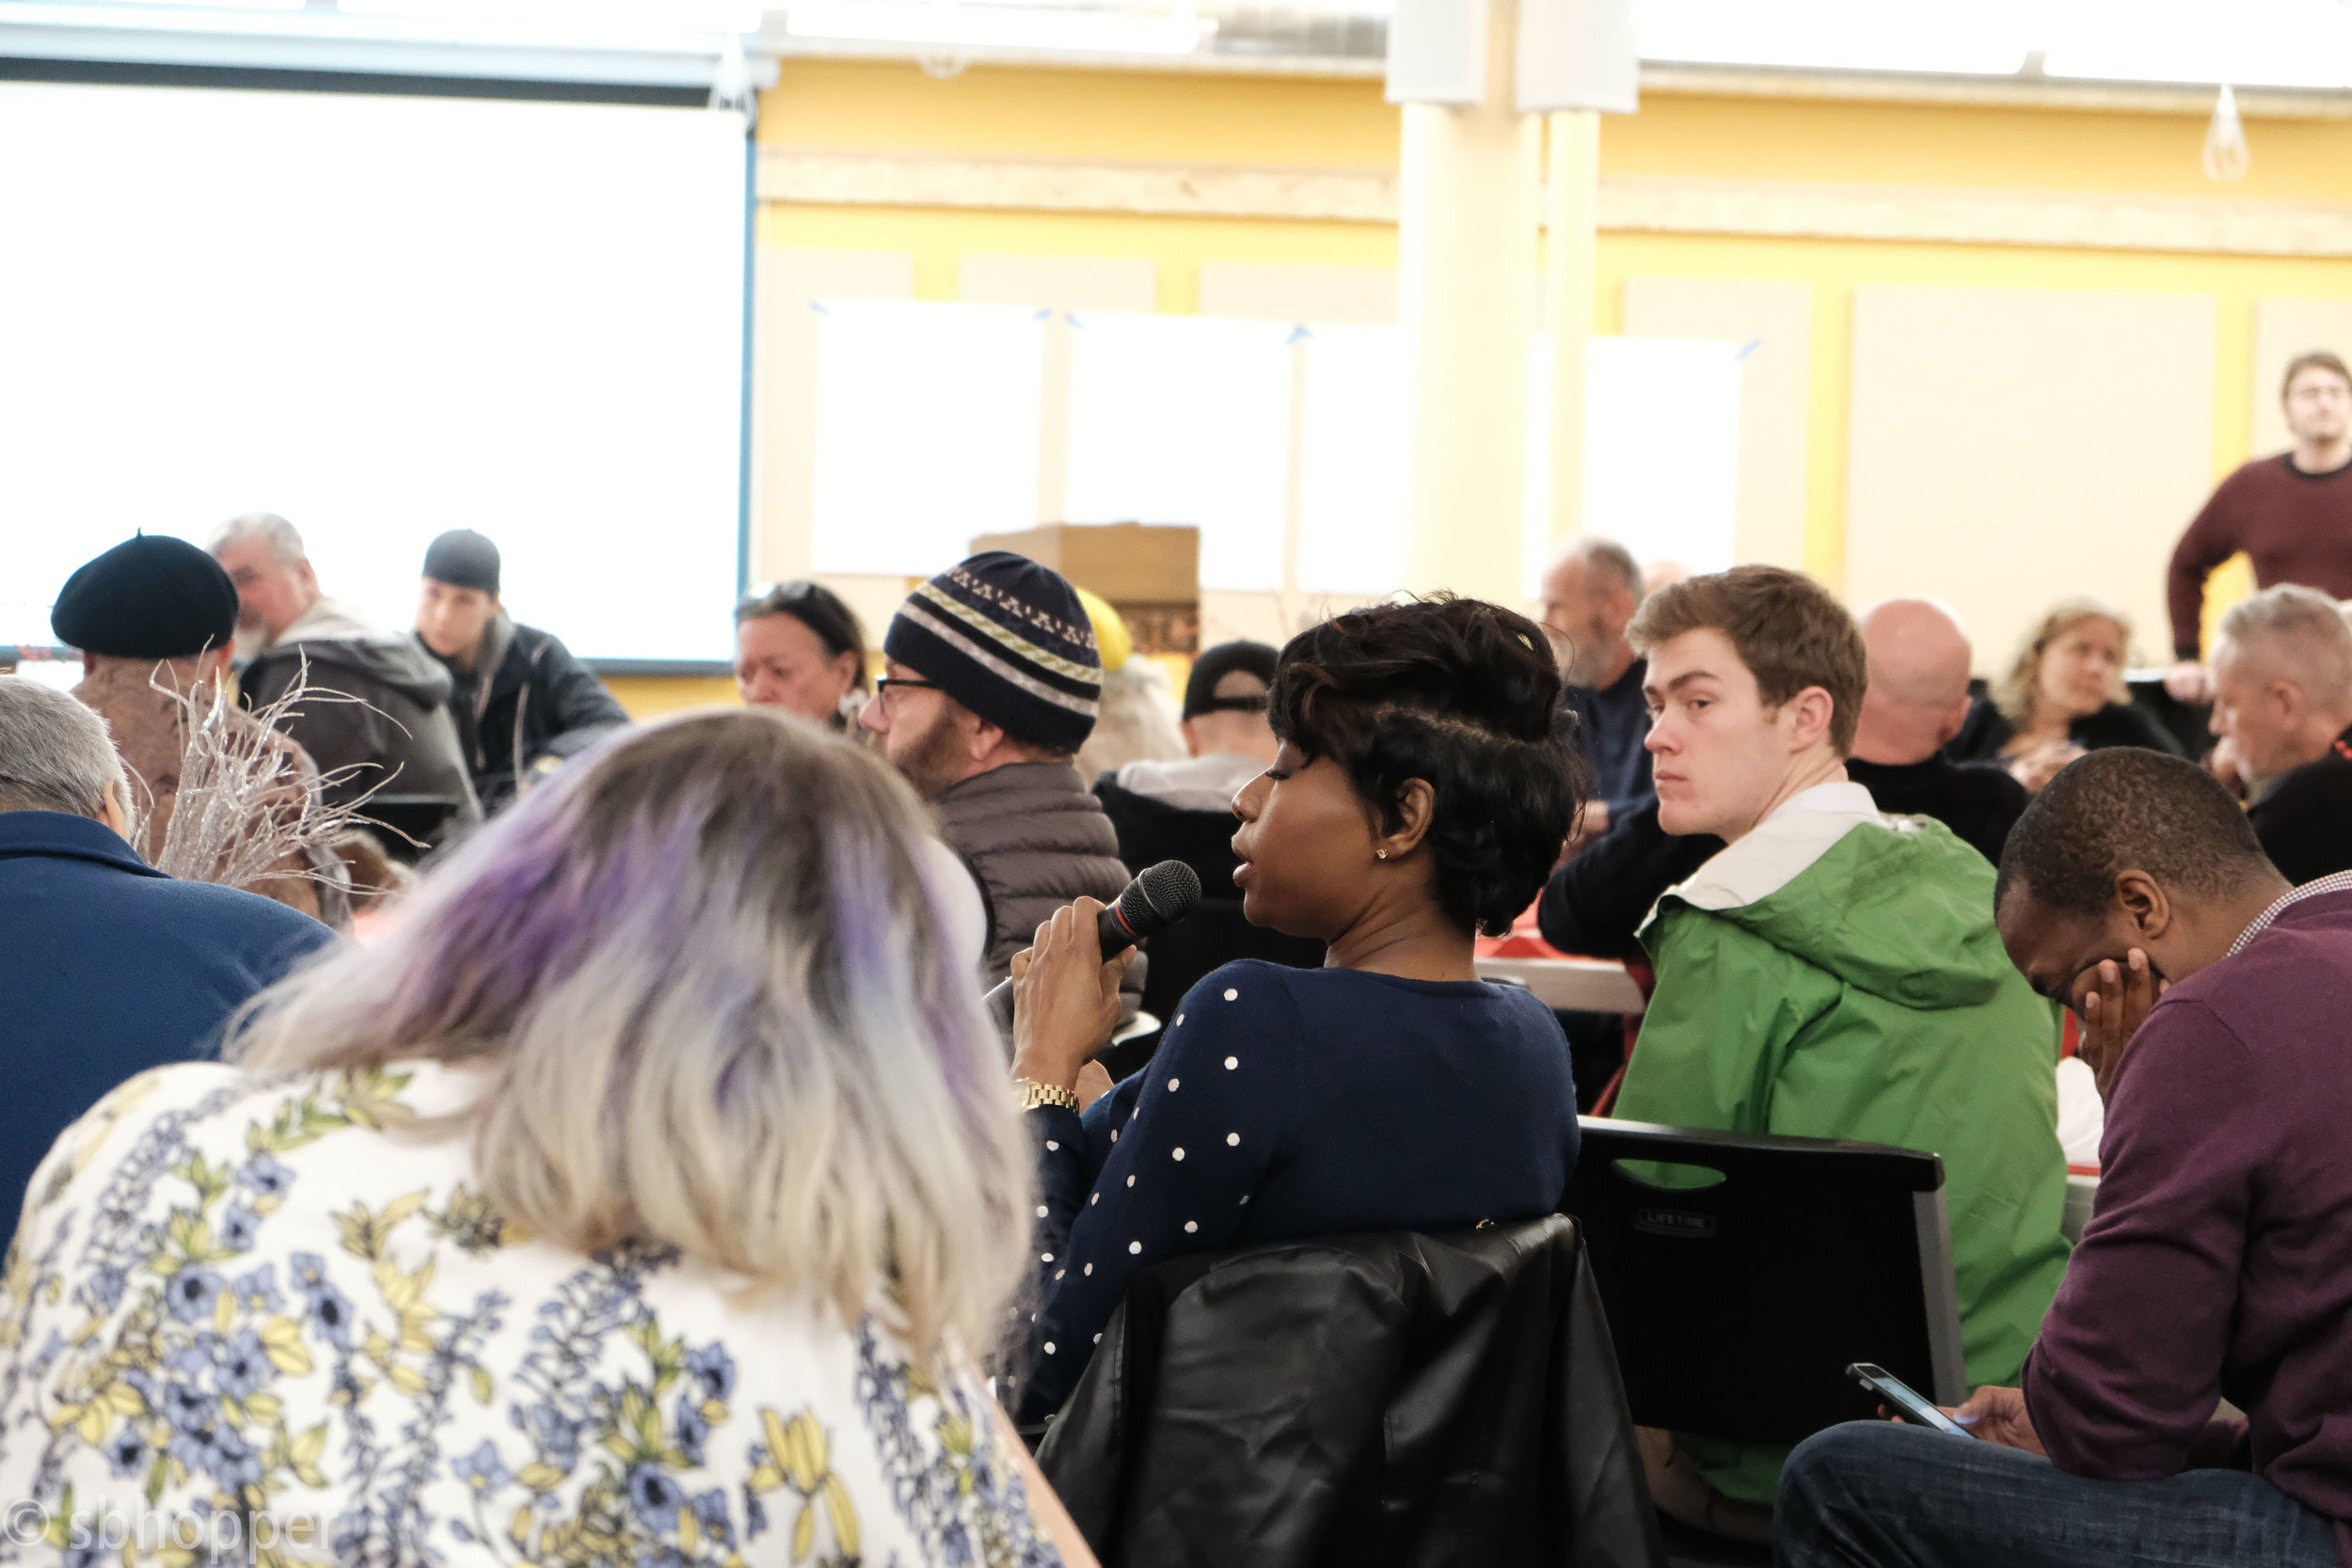 Capitol Hill Housing event 19 December 2017 (10 of 12)